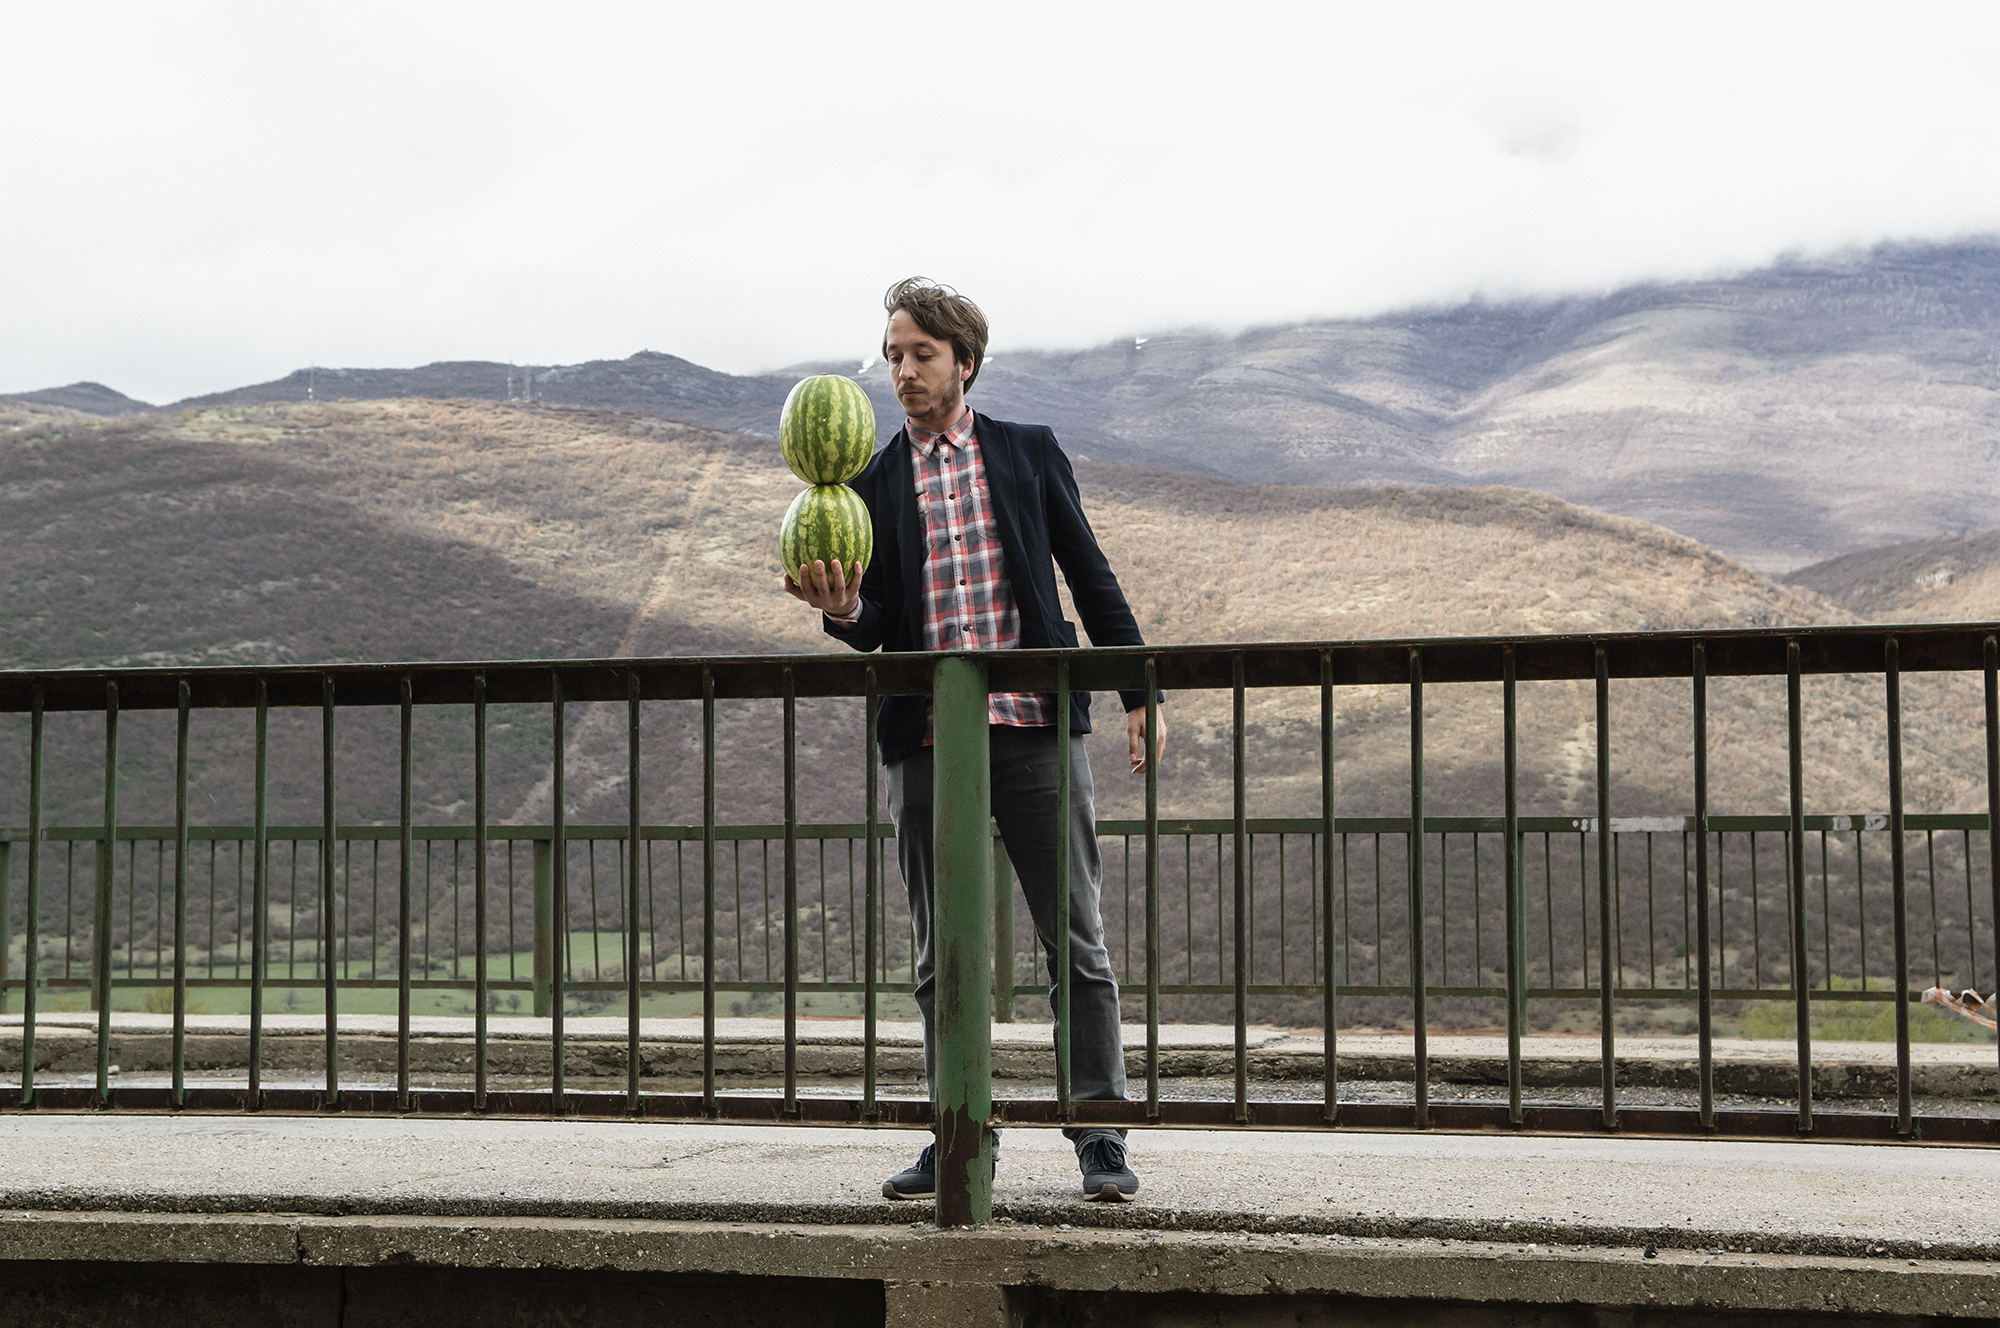 A photograph of a man stood on a bridge in front of hills in sunlight balancing two watermelons in his hand - Driton SELMANI - They say you can't hold two watermelons in one hand